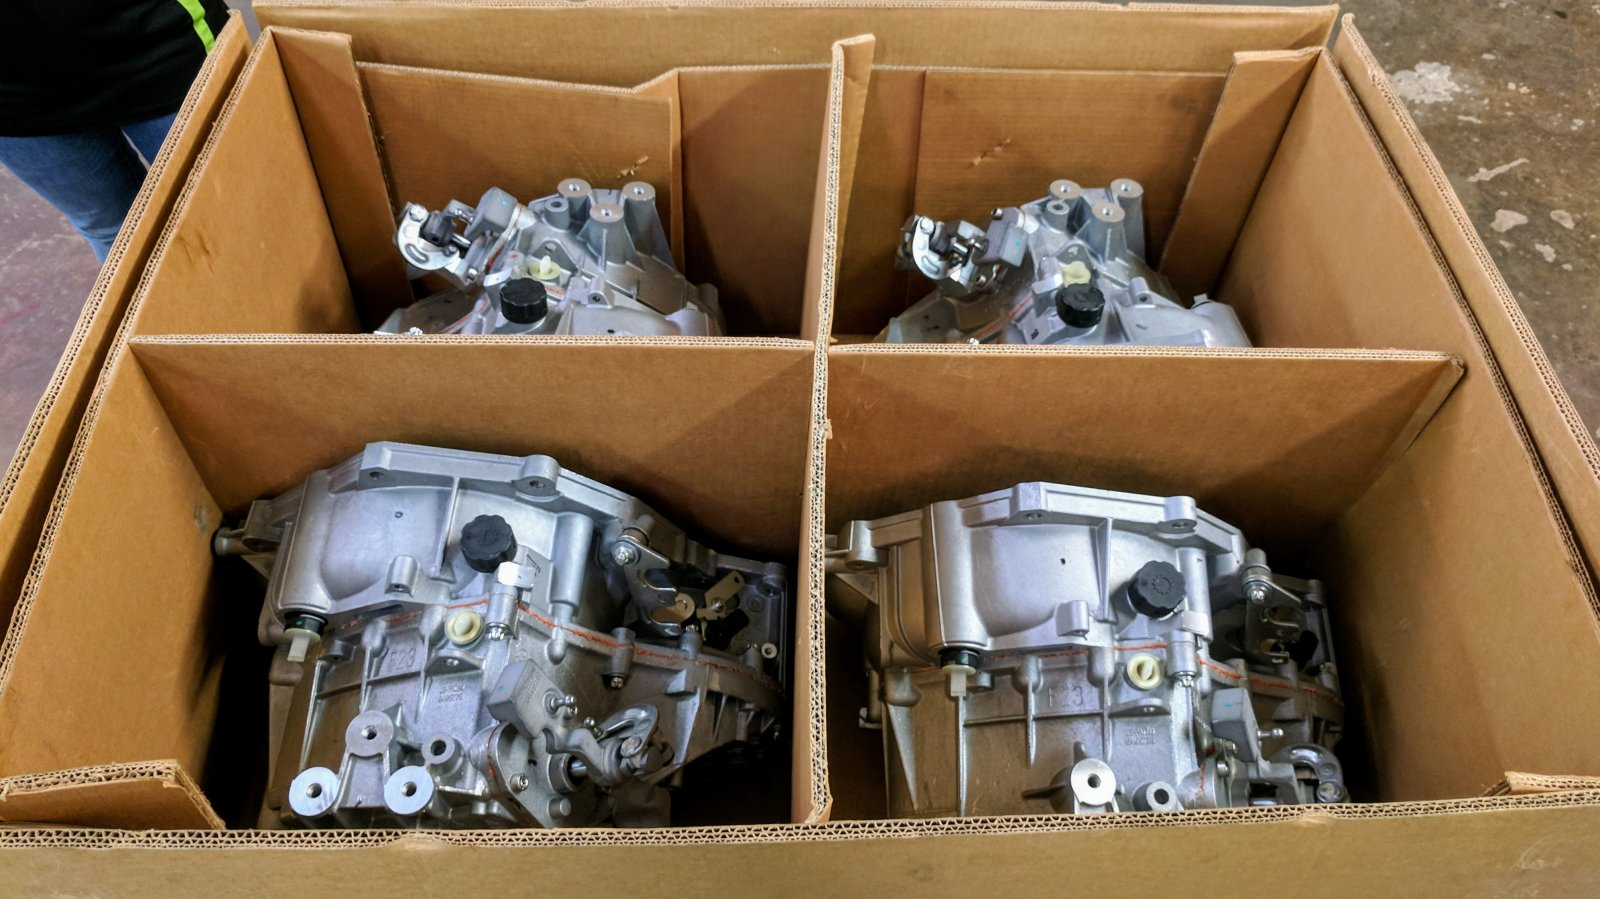 Zero Mile Getrag F23 Transmissions Available - $450 | DF Kit